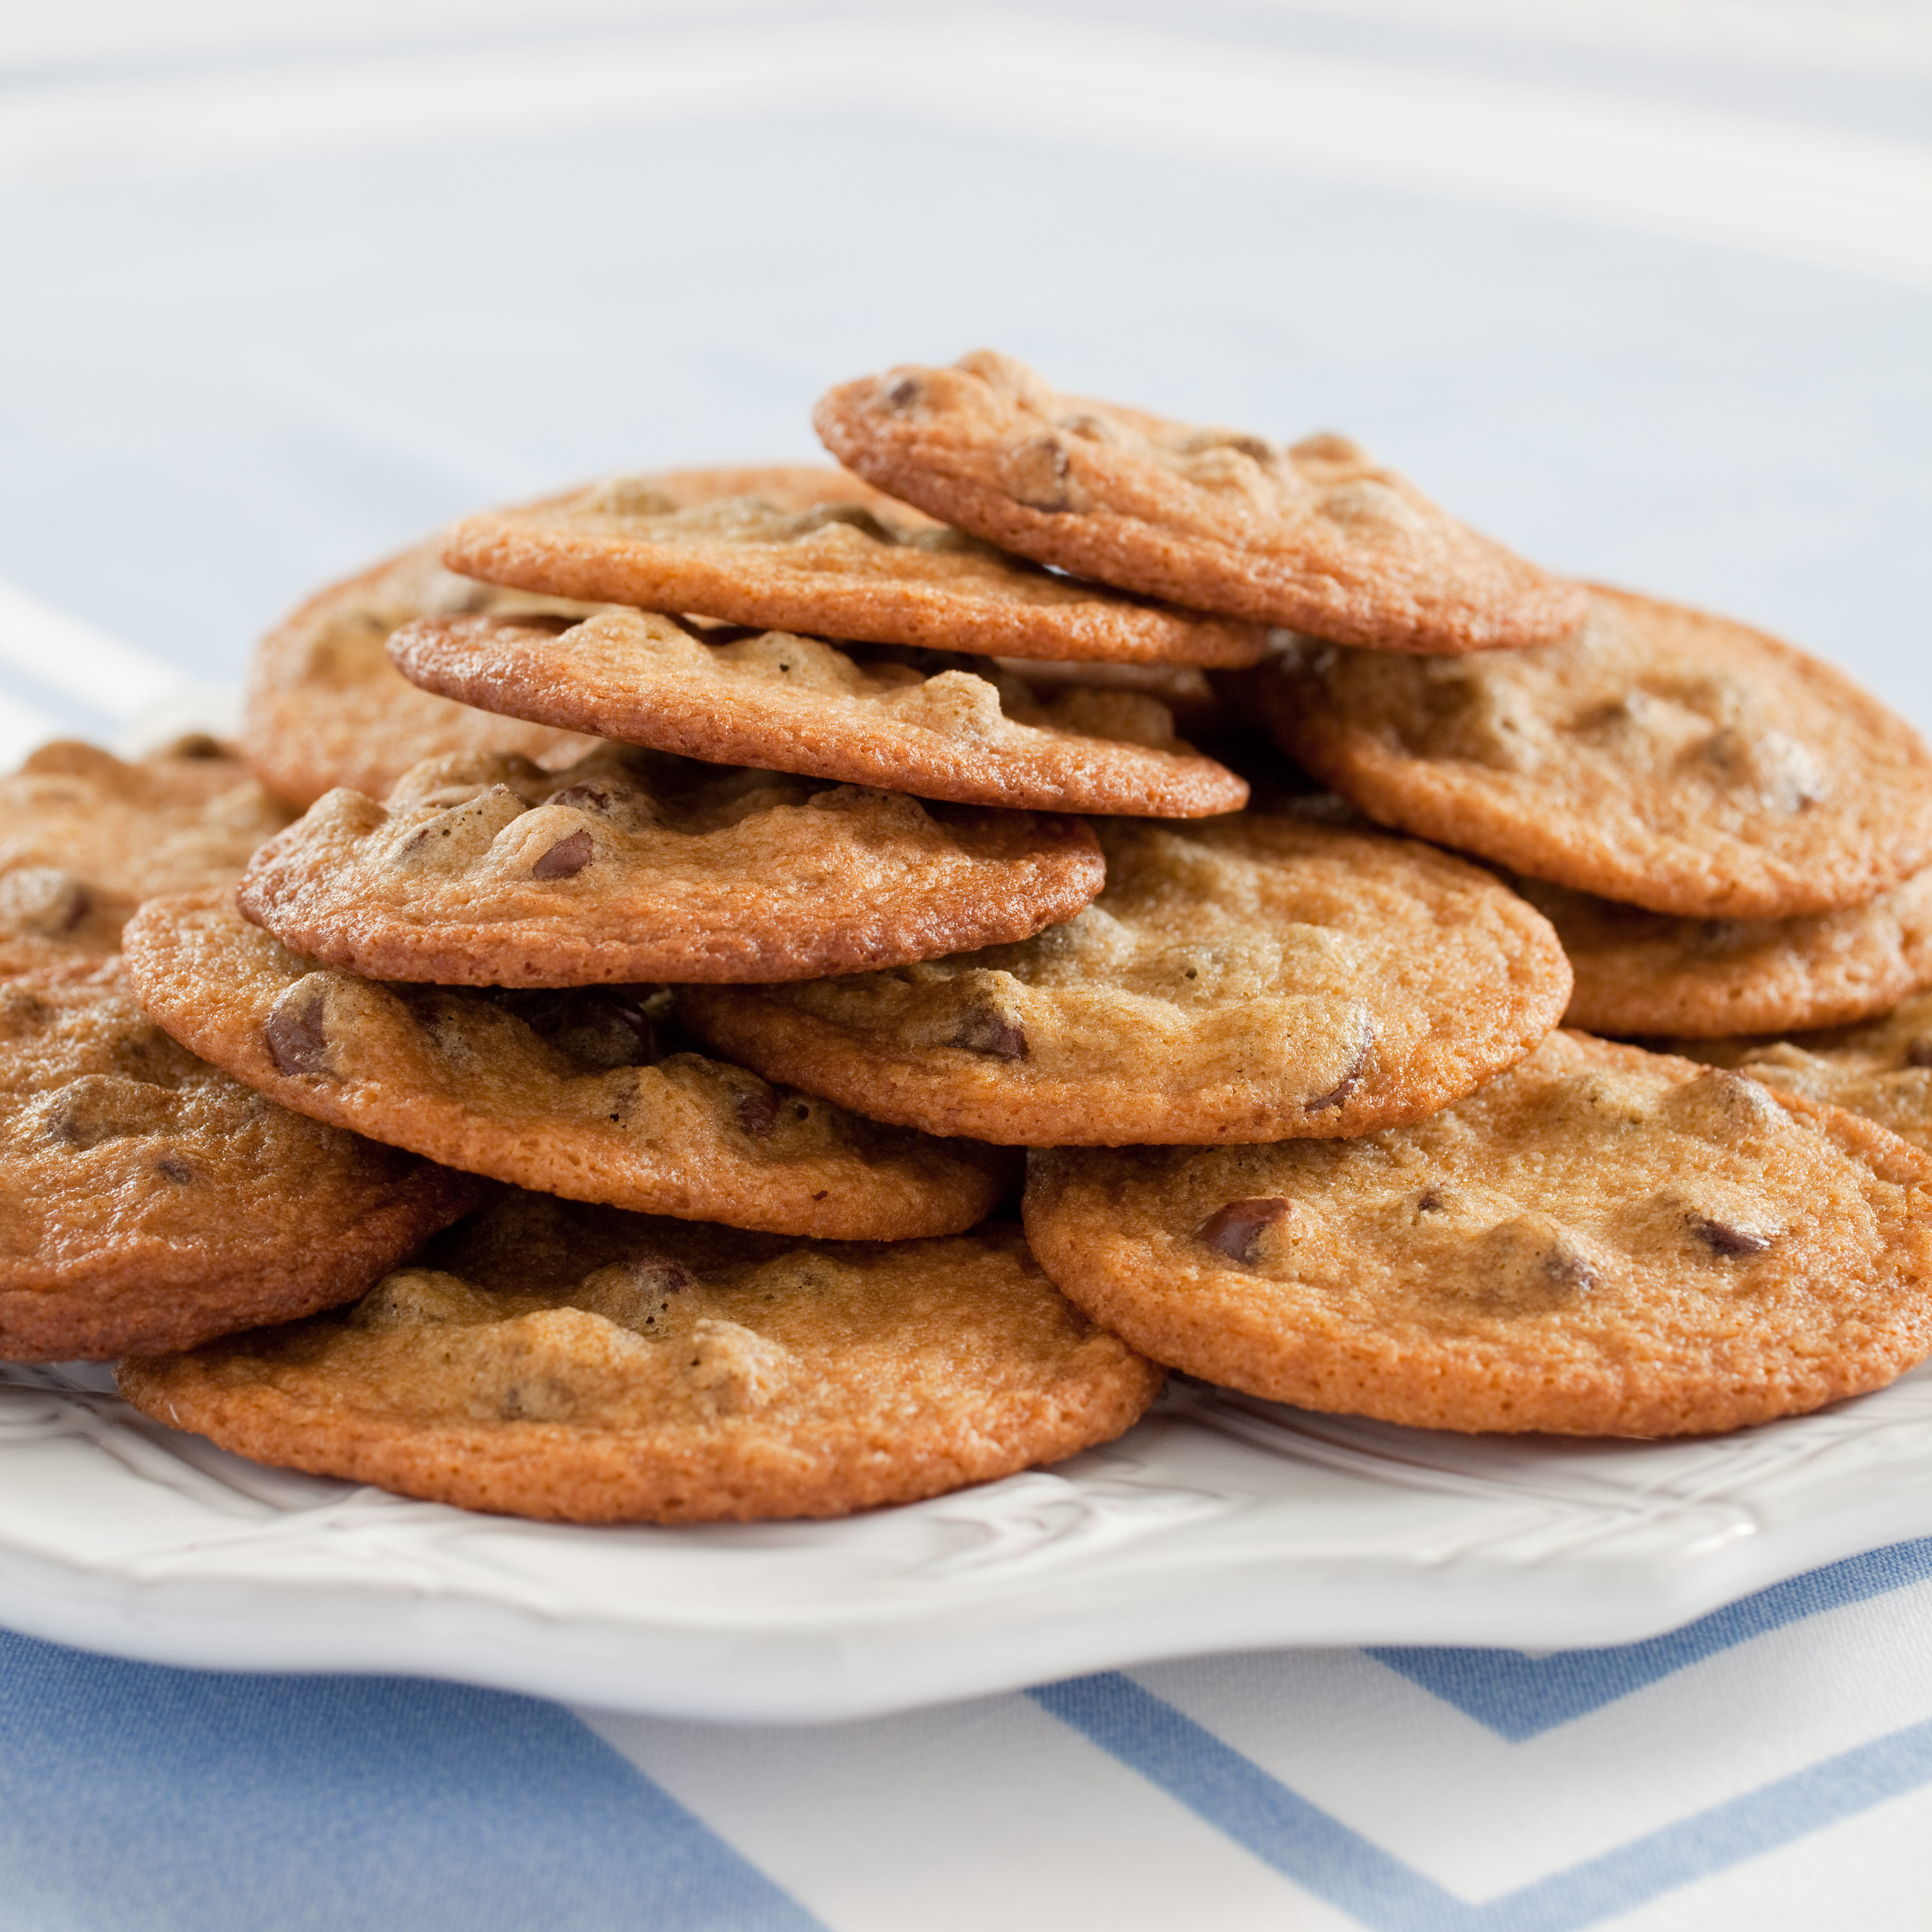 Thin, Crispy Chocolate Chip Cookies Recipe - Cook's Illustrated